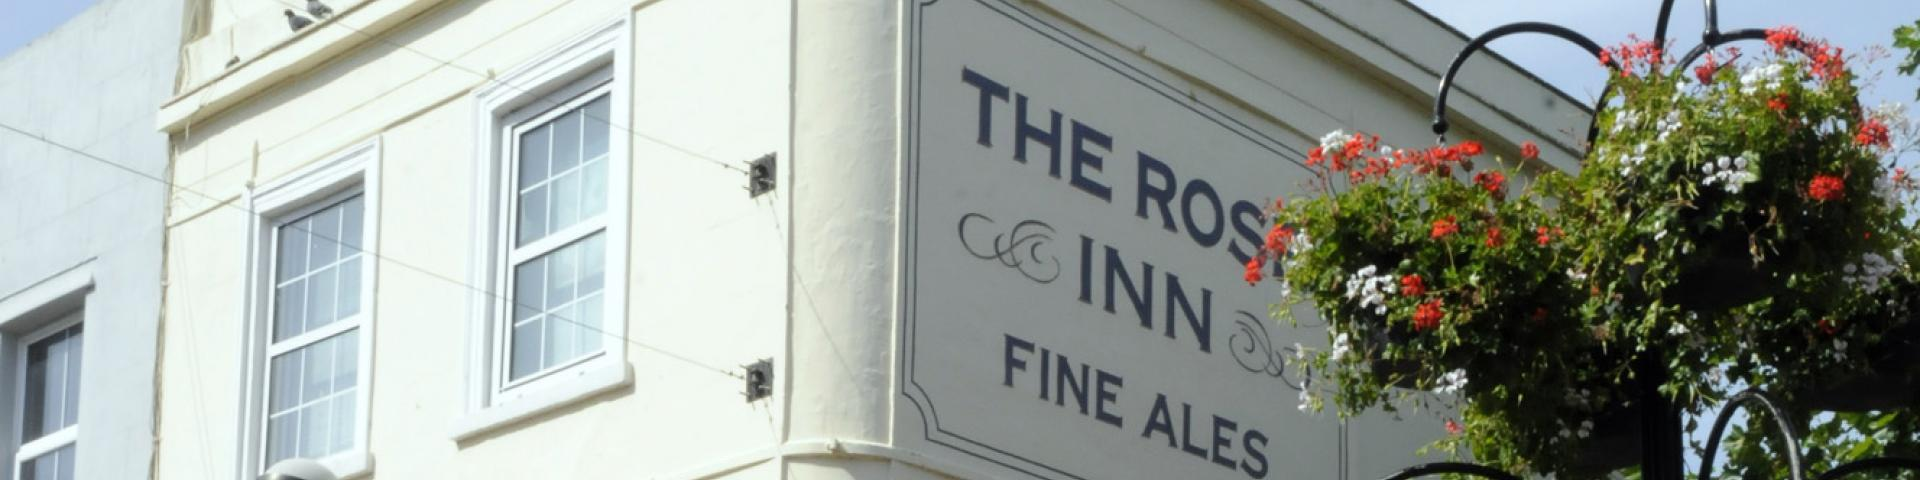 Contact the Rose Inn Herne Bay